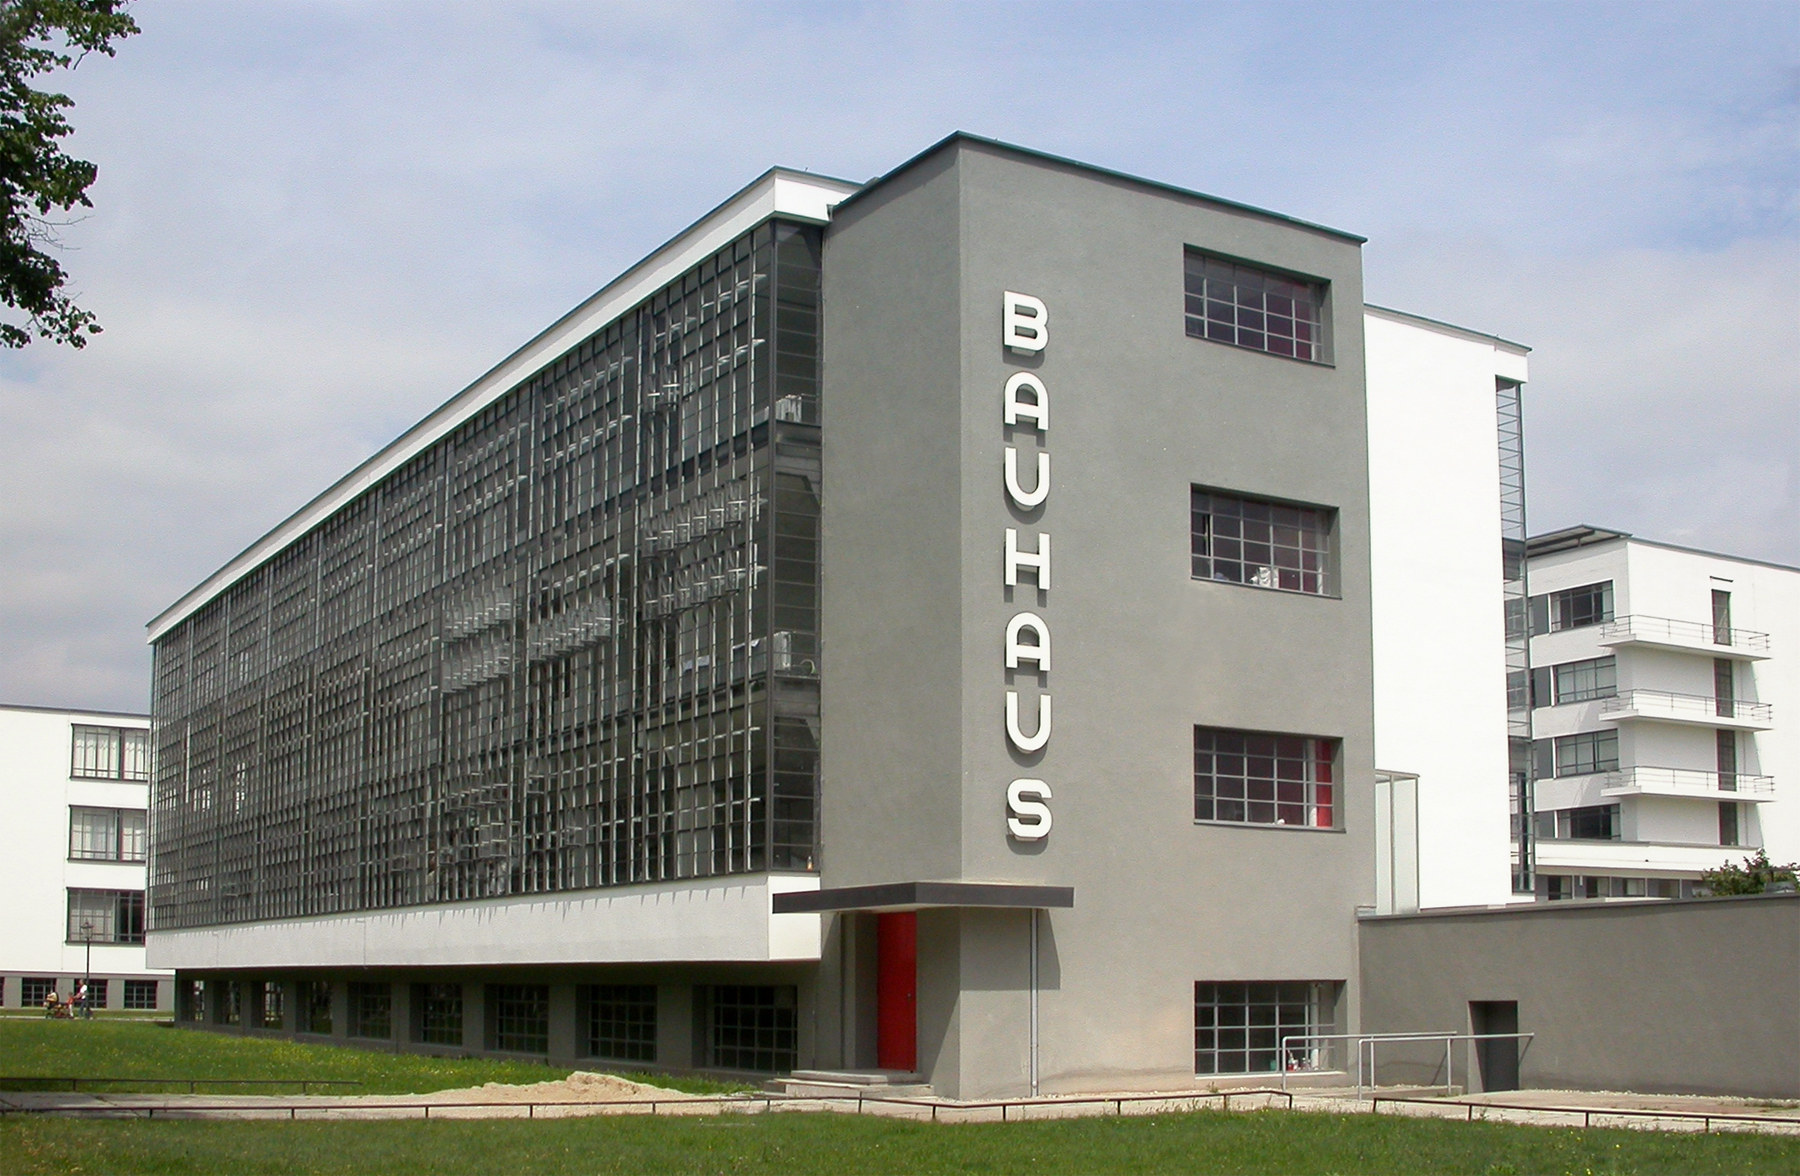 lessons from the bauhaus school of art and architecture http